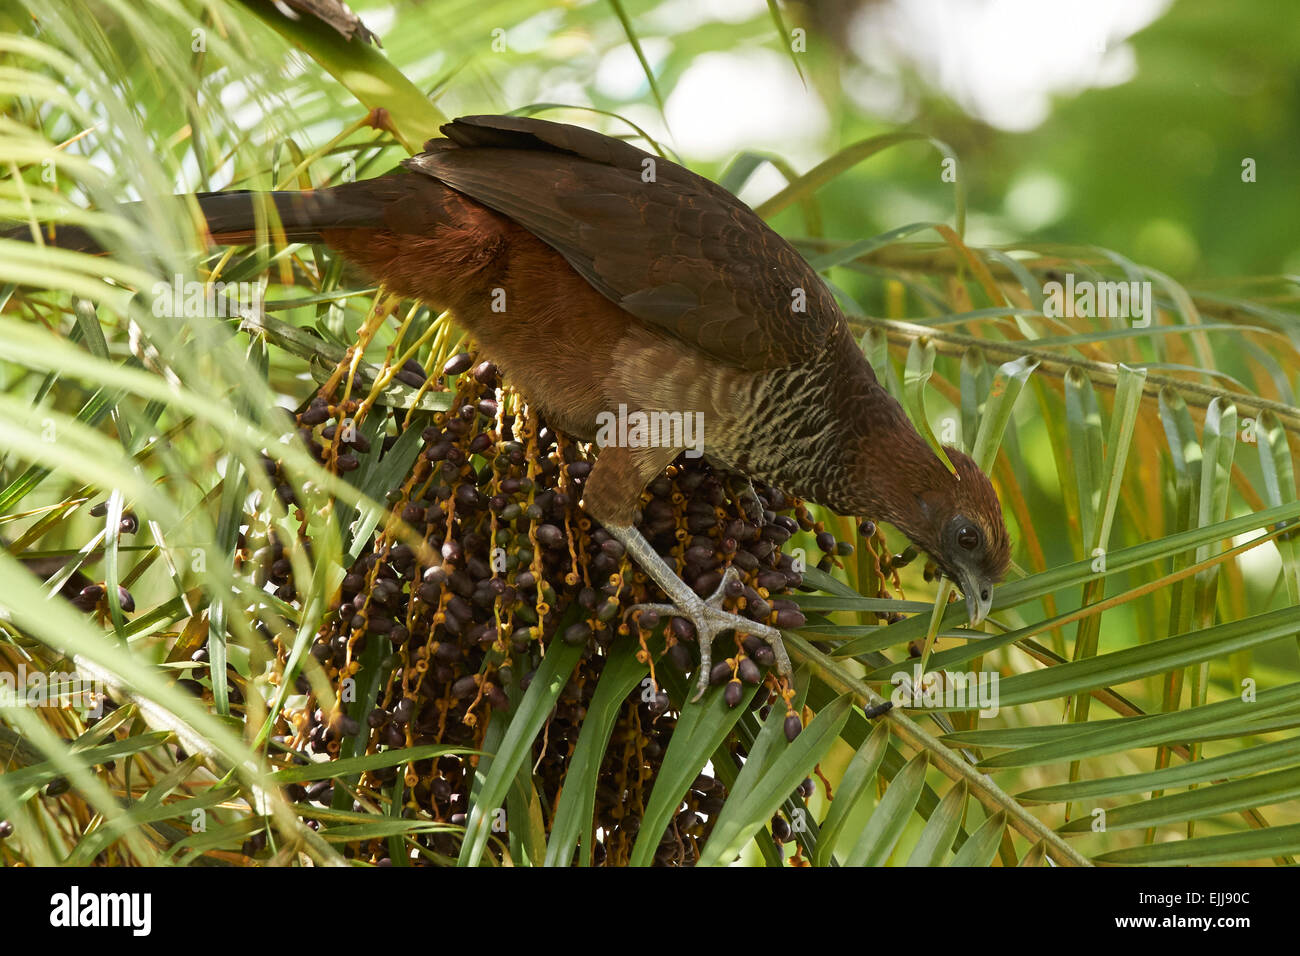 Speckled chachalaca feeding on palm tree berries - Stock Image